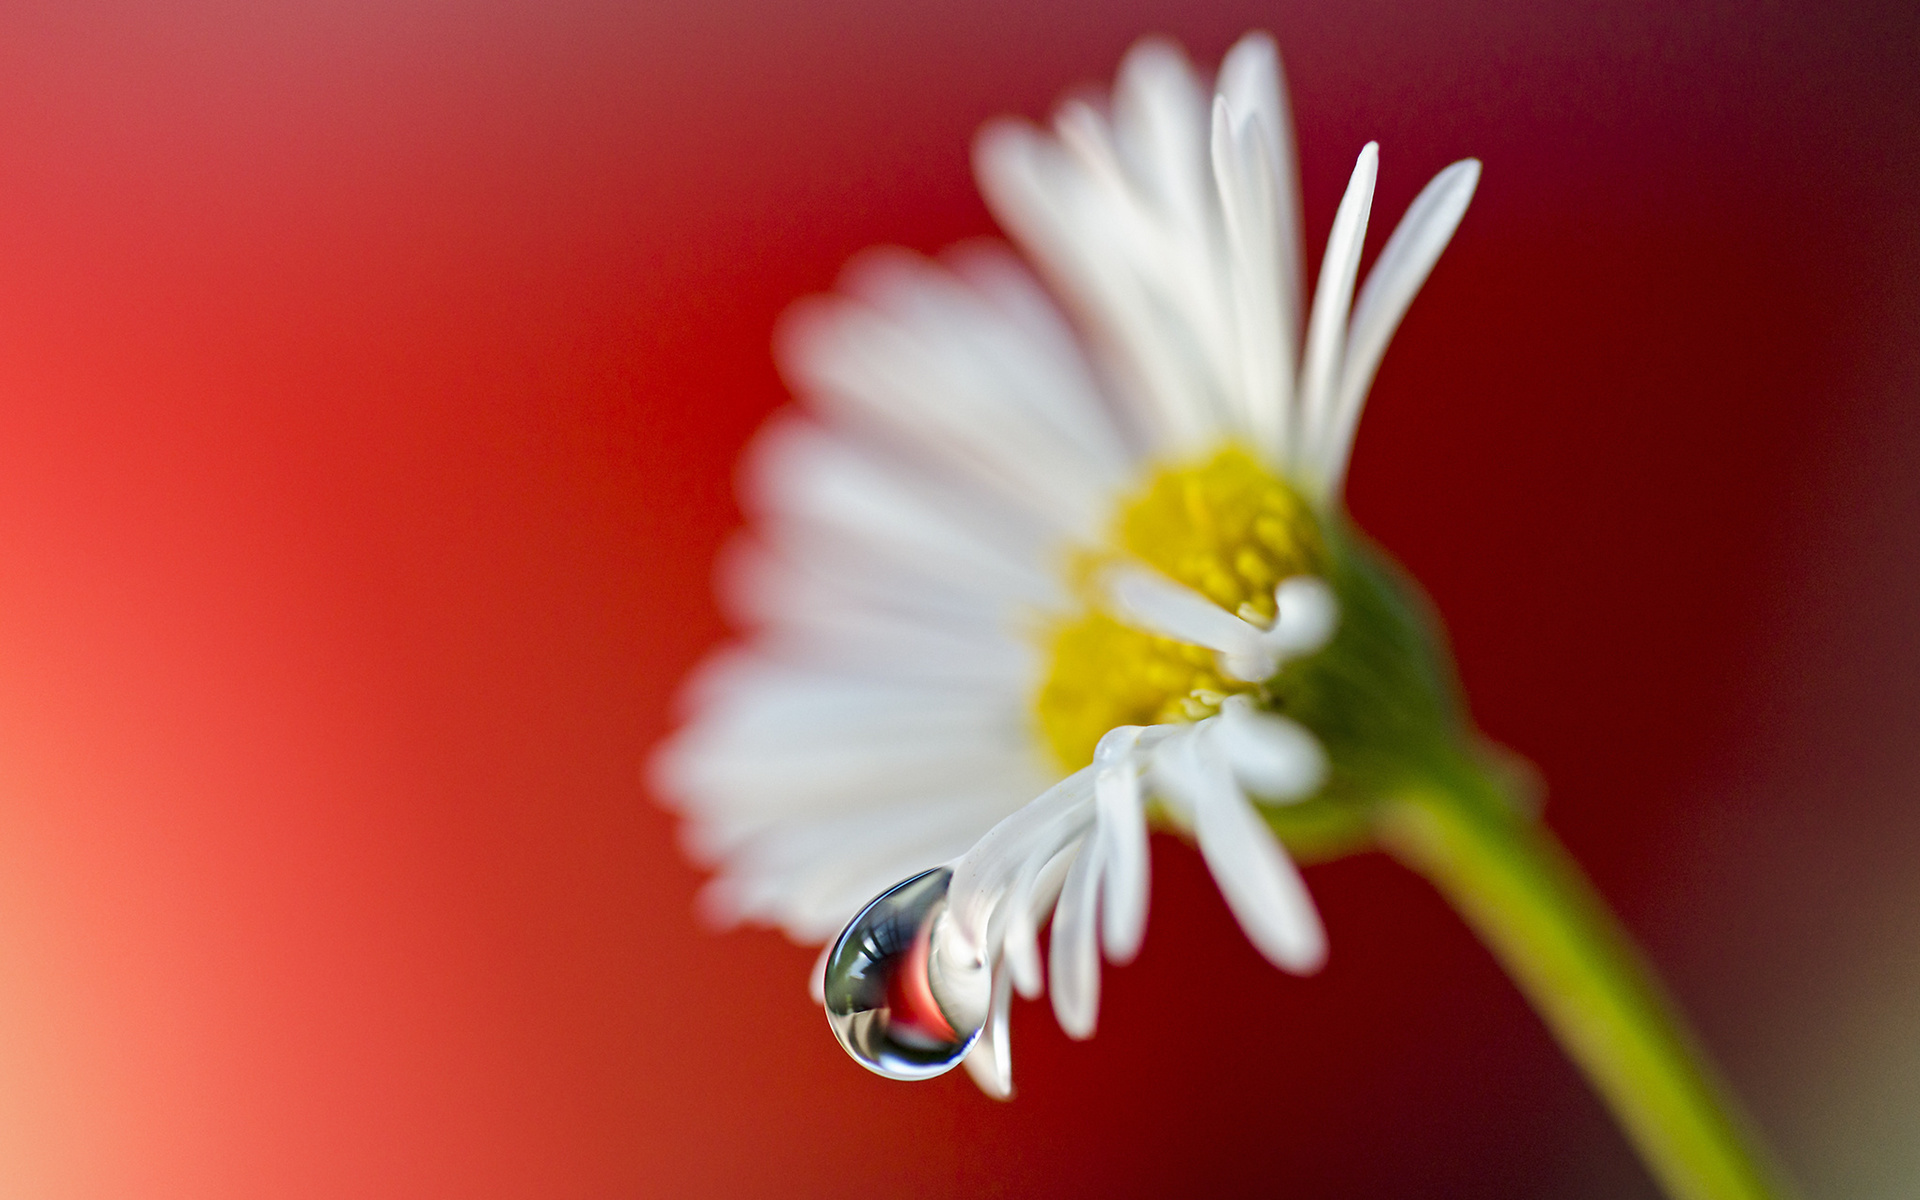 23520 download wallpaper Plants, Flowers, Camomile, Drops screensavers and pictures for free